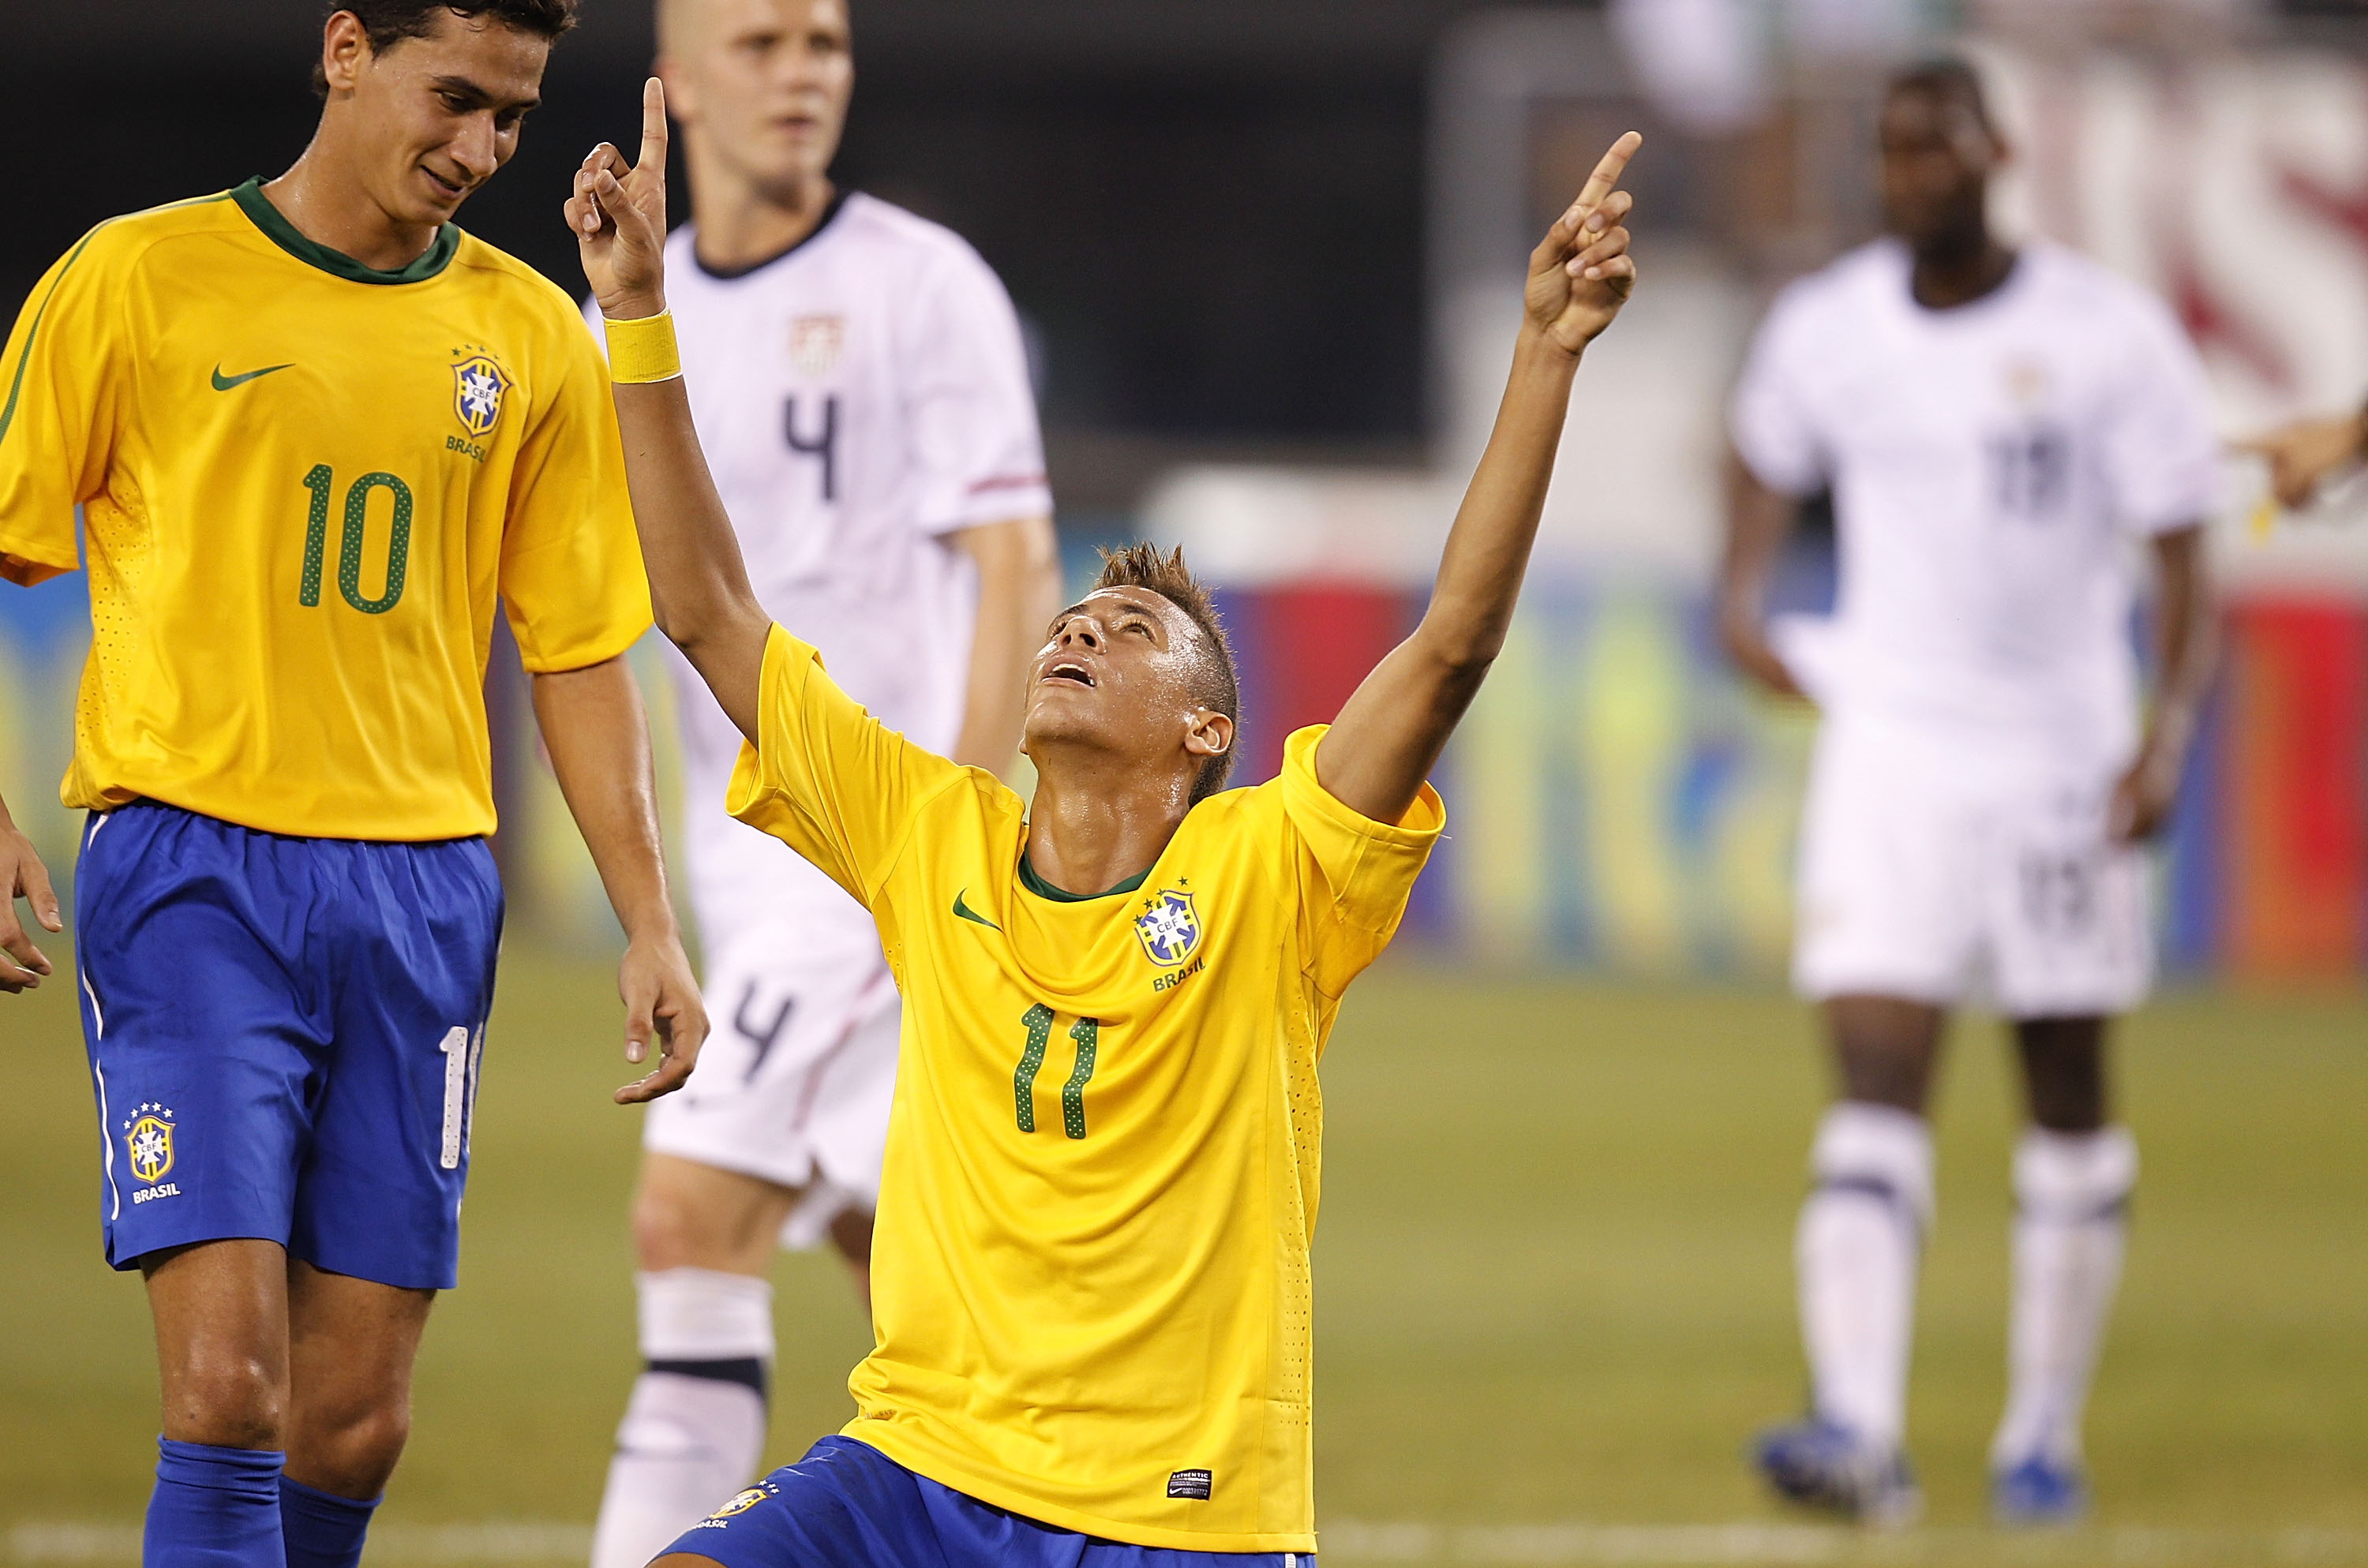 Neymar, Firmino lead Brazil over United States  2-0 in exhibition